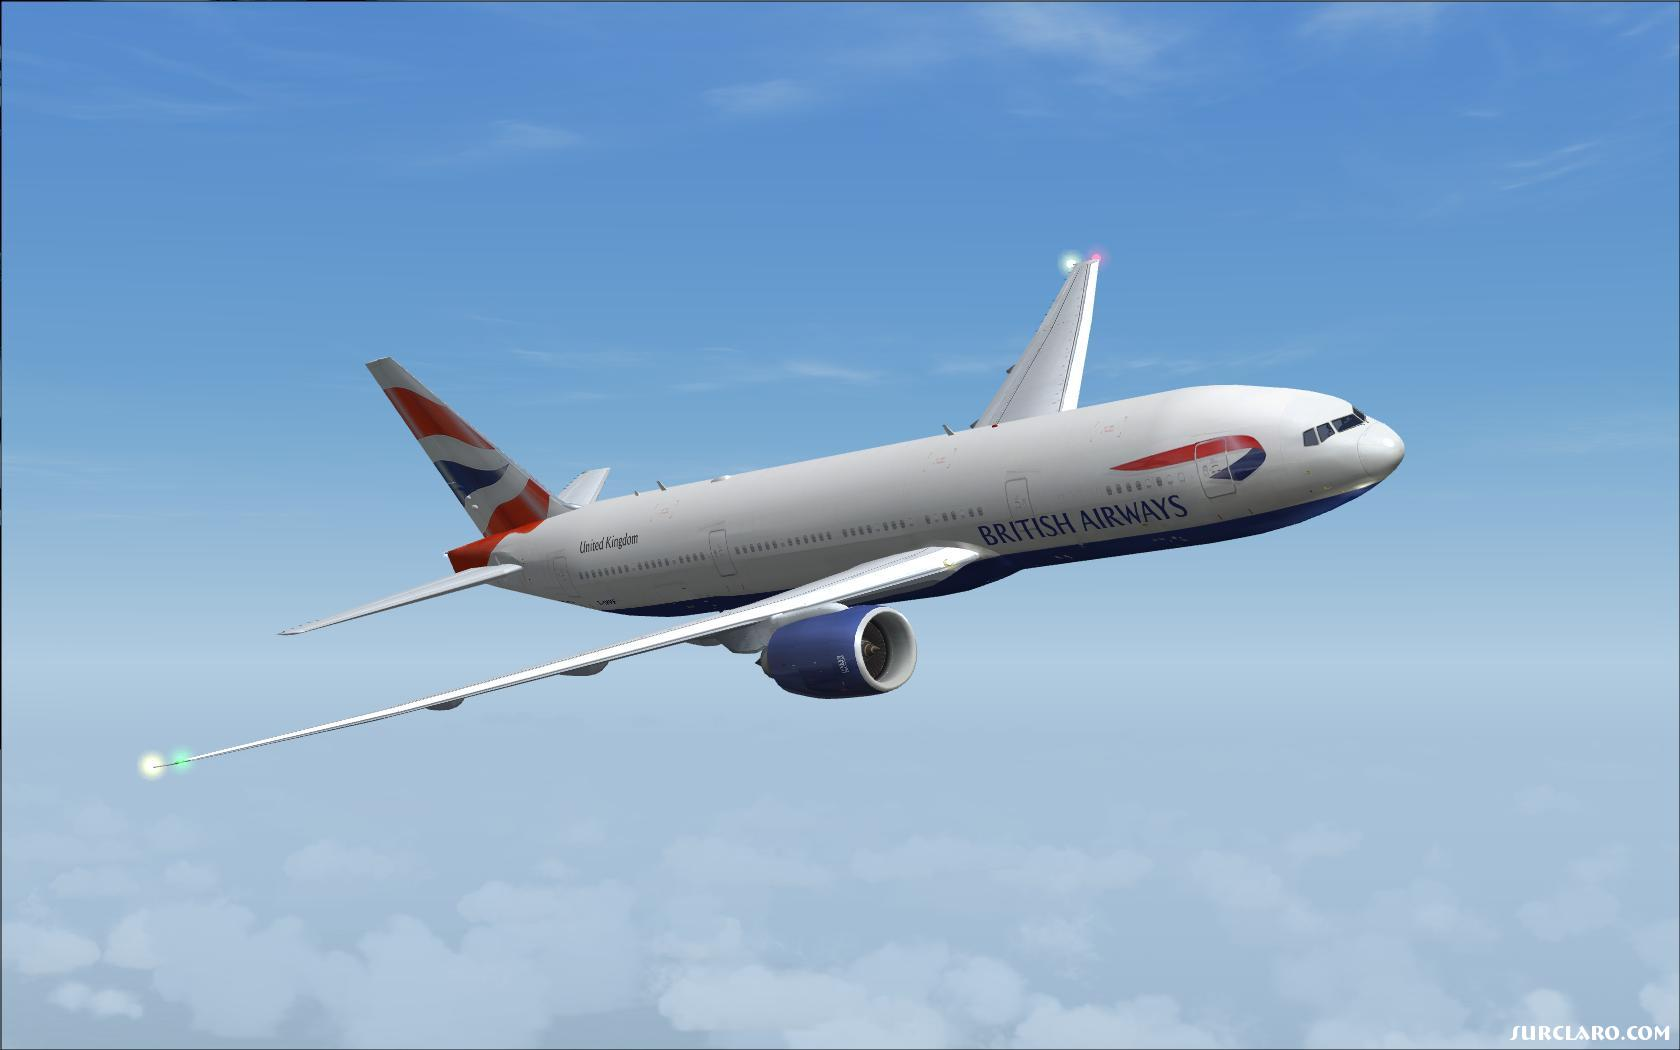 flight simulator boeing 777 with Photo17467 on 1674 as well Fsx V Australia Boeing 777 300 Er as well Content 29167268 14 besides Watch together with 791.